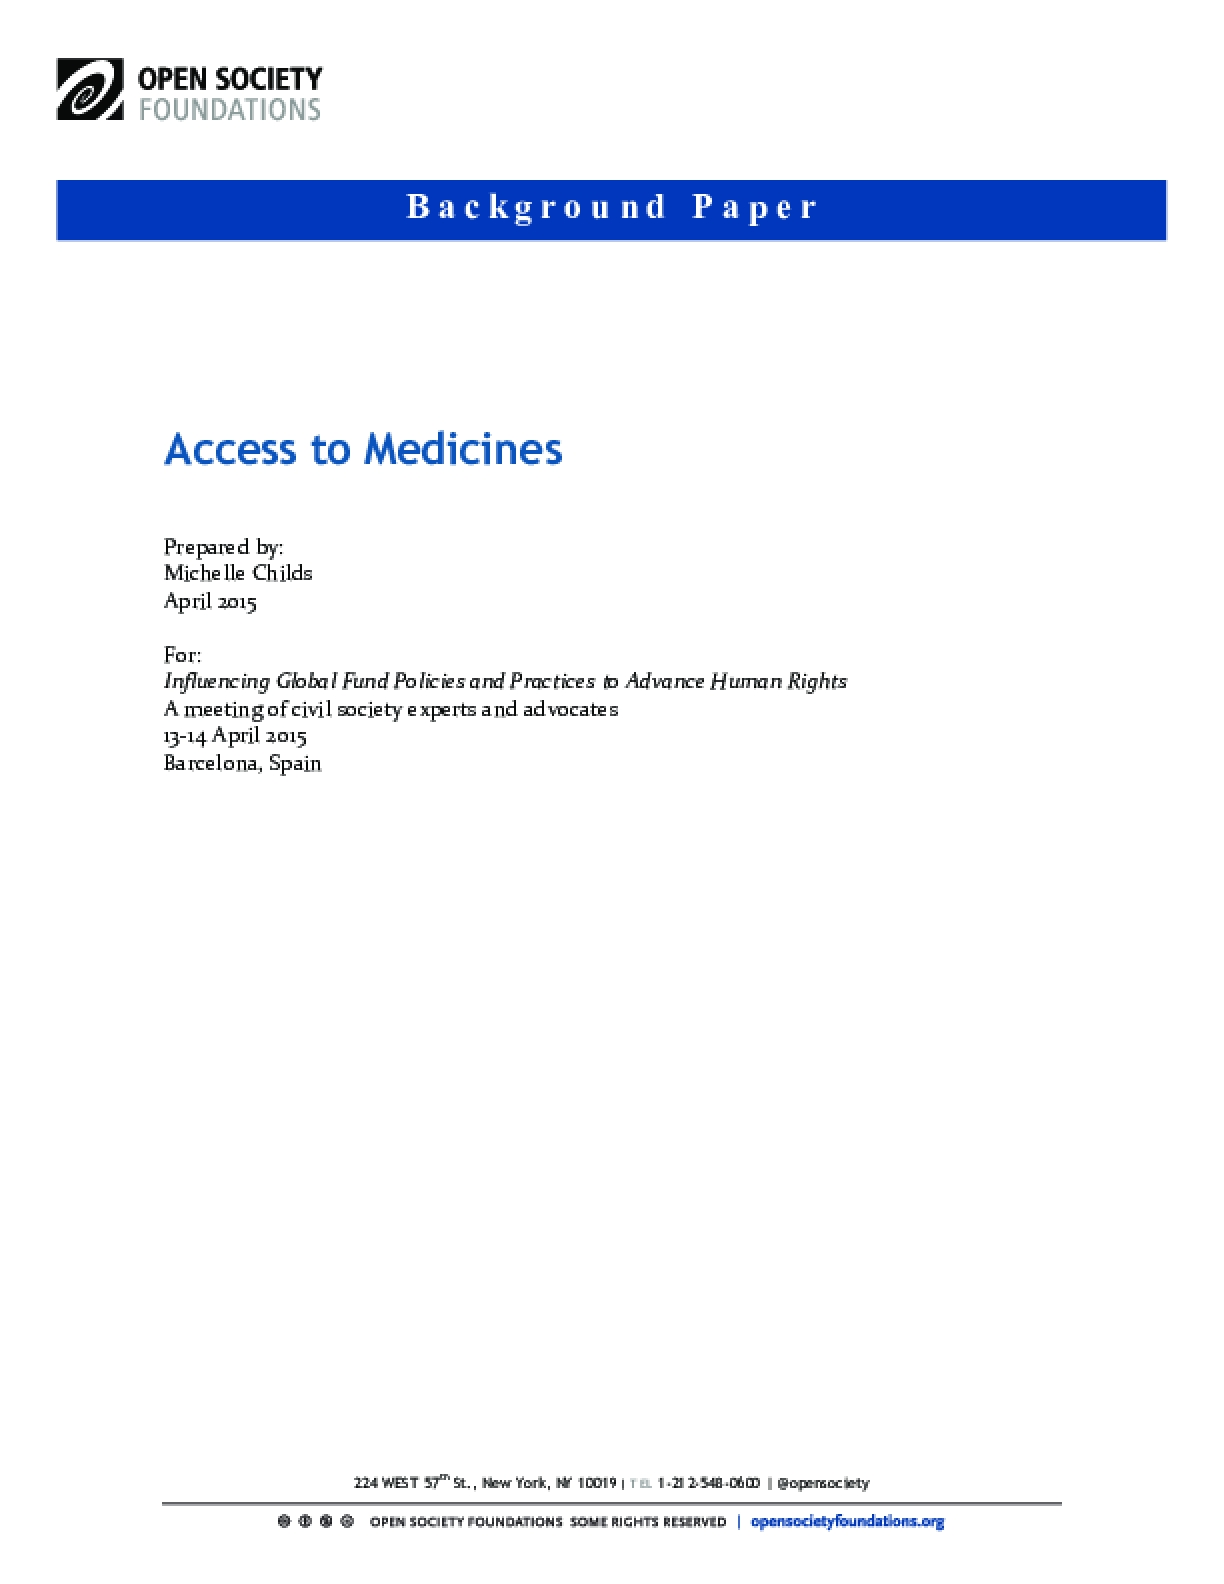 Access to Medicines and the Global Fund